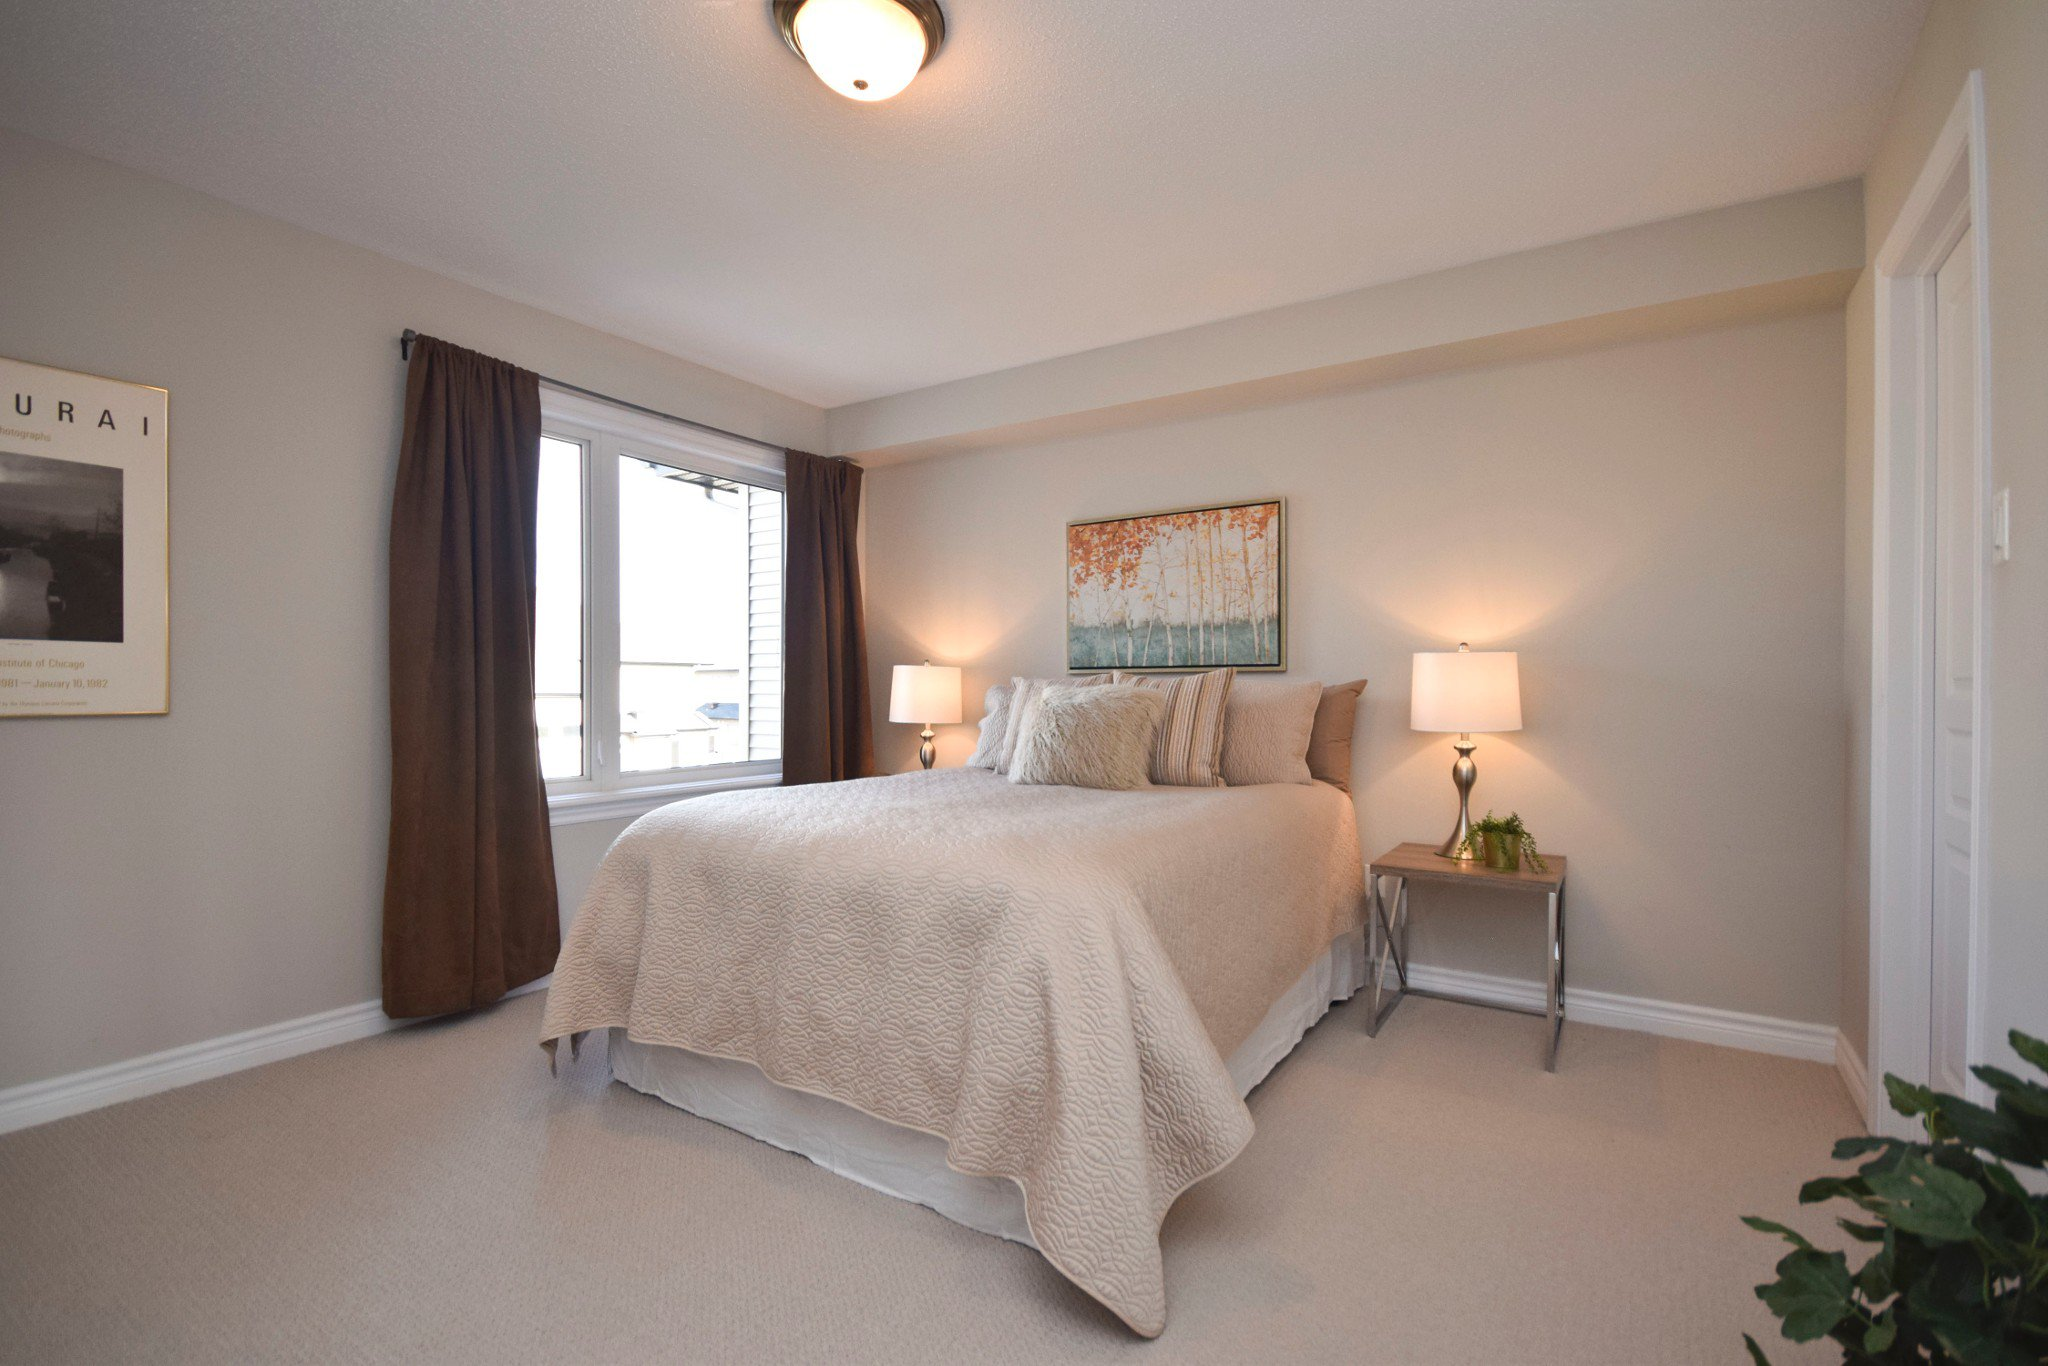 Photo 38: Photos: 131 Popplewell Crescent in Ottawa: Cedargrove / Fraserdale House for sale (Barrhaven)  : MLS®# 1130335